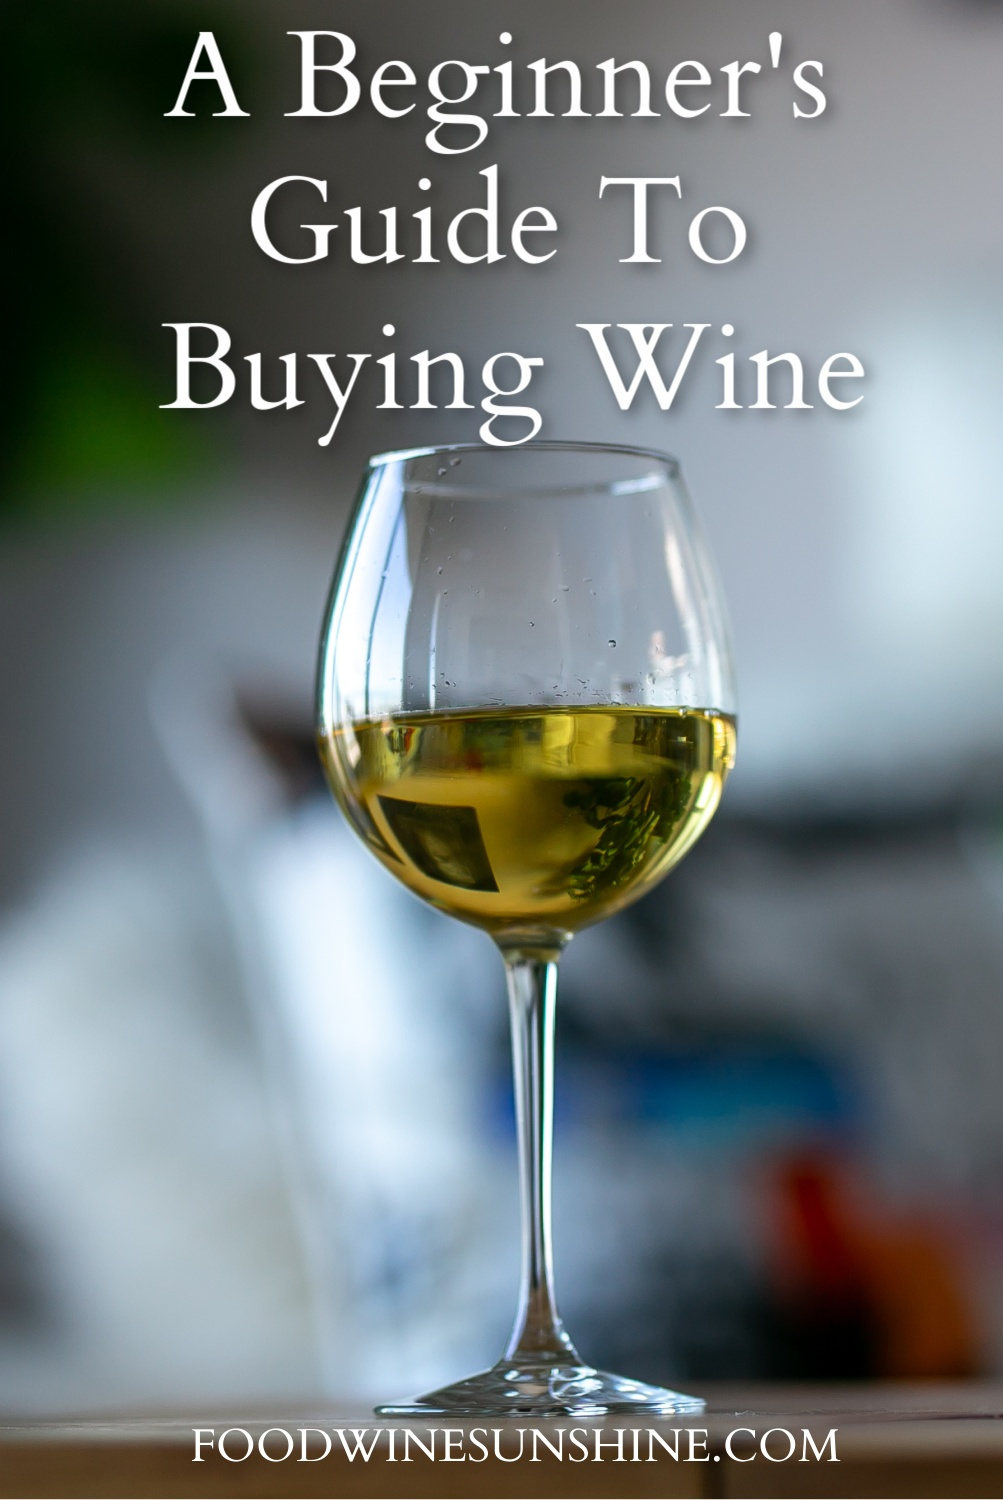 A Beginner's Guide To Buying Wine